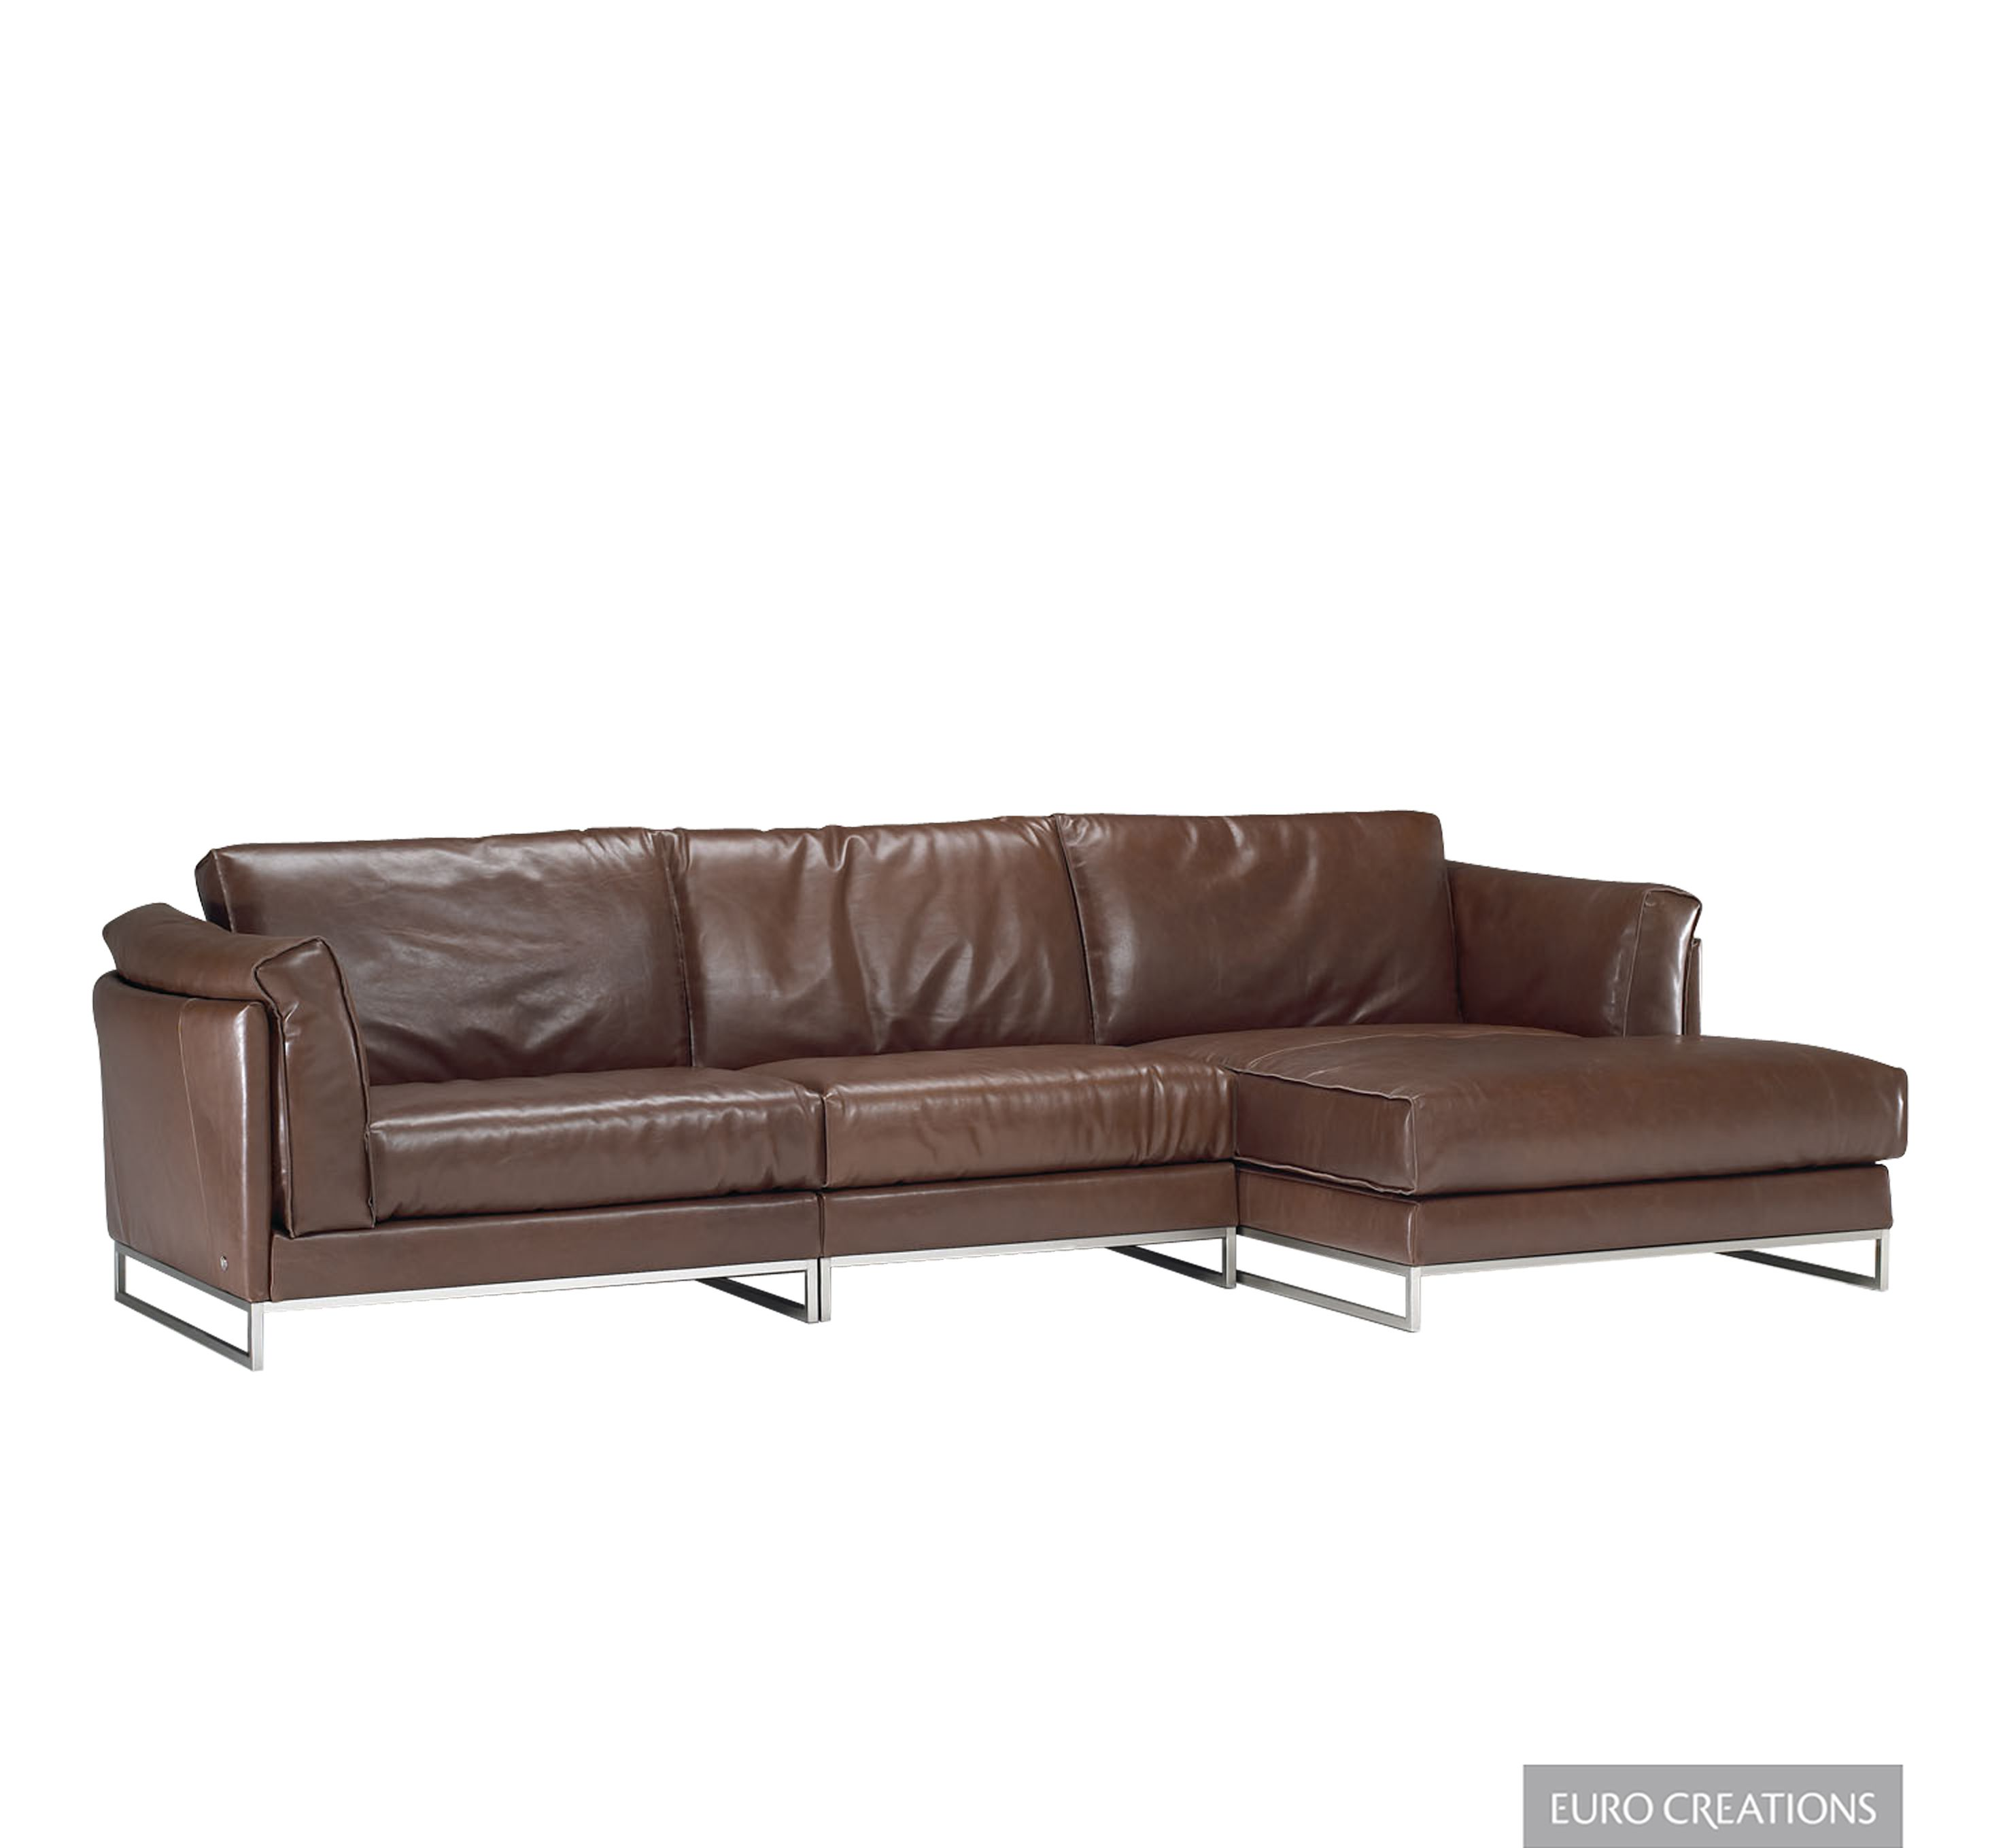 Italsofa Sectional 40% f msrp Discontinued leather color